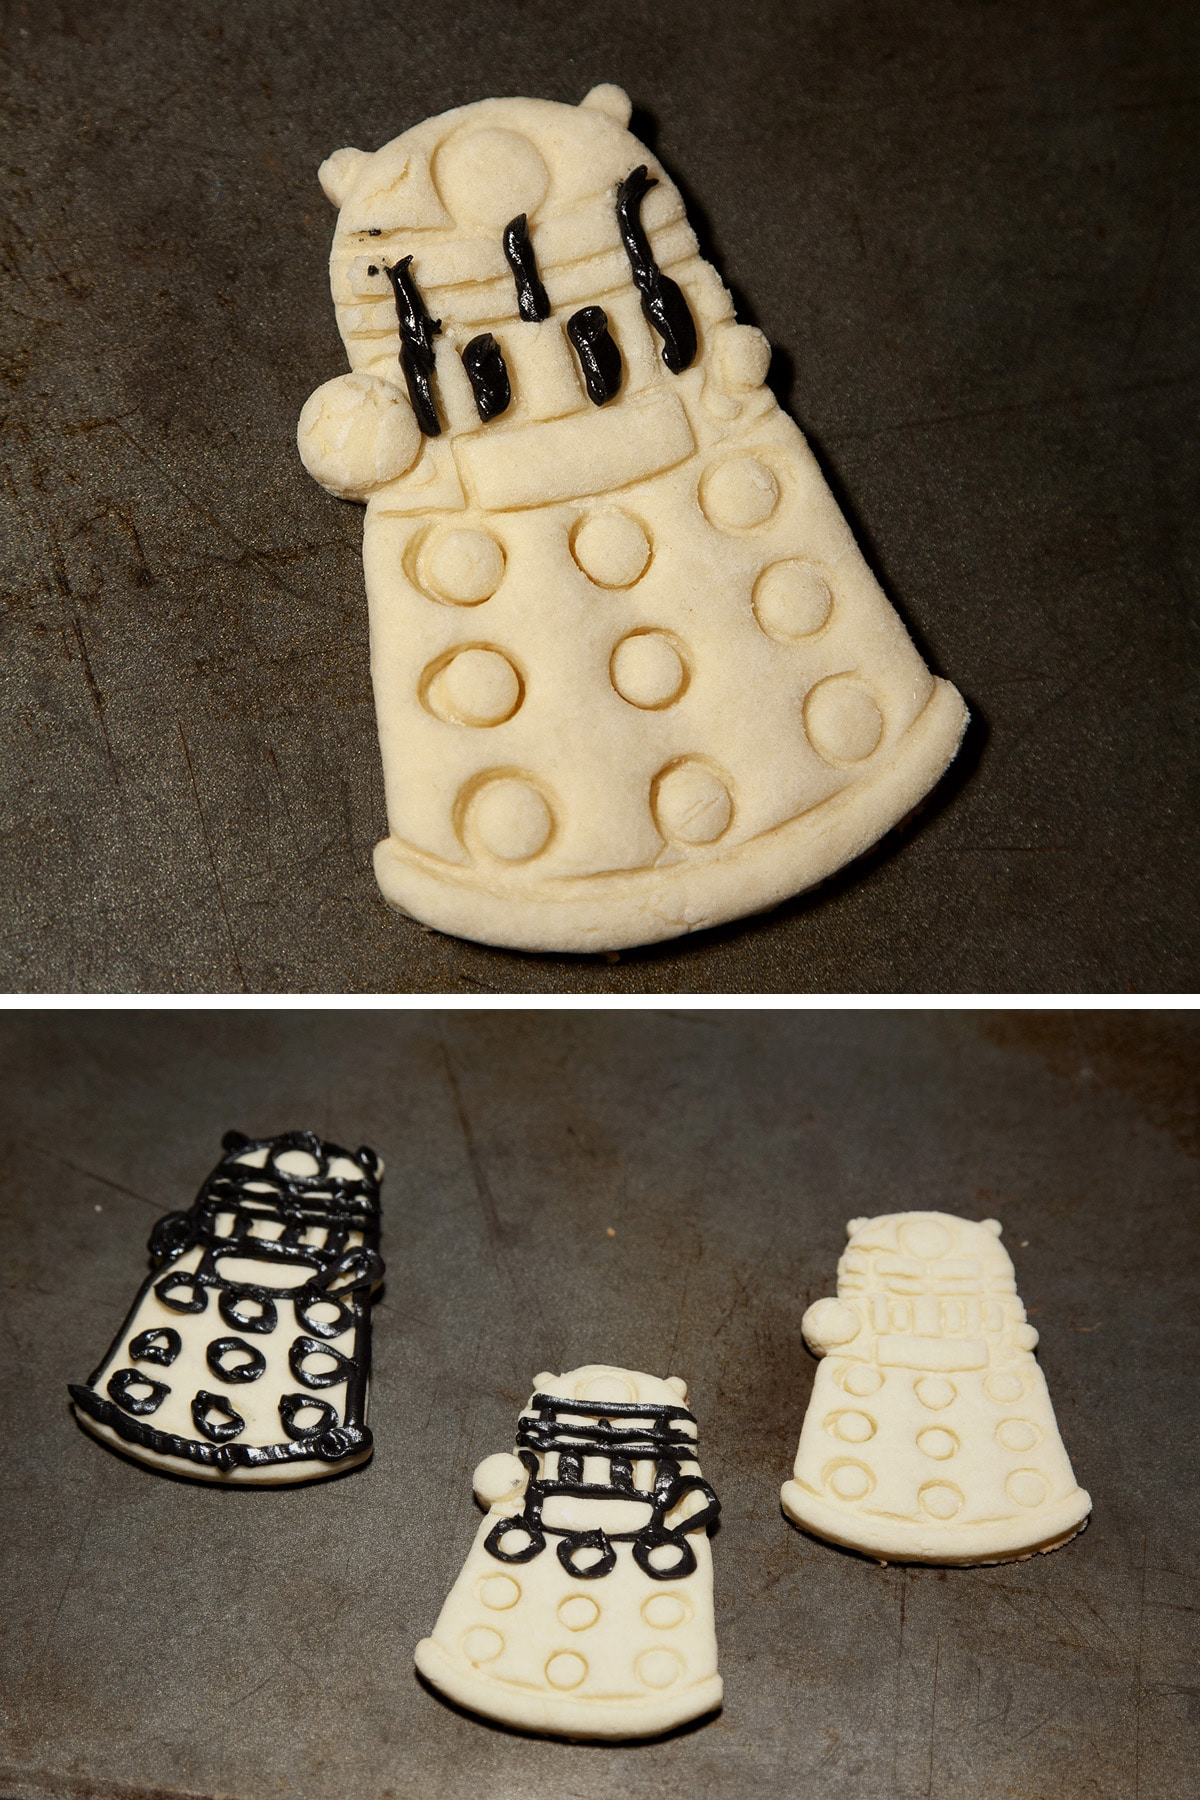 A Dalek shaped sugar cookie with some black frosting outlines started.